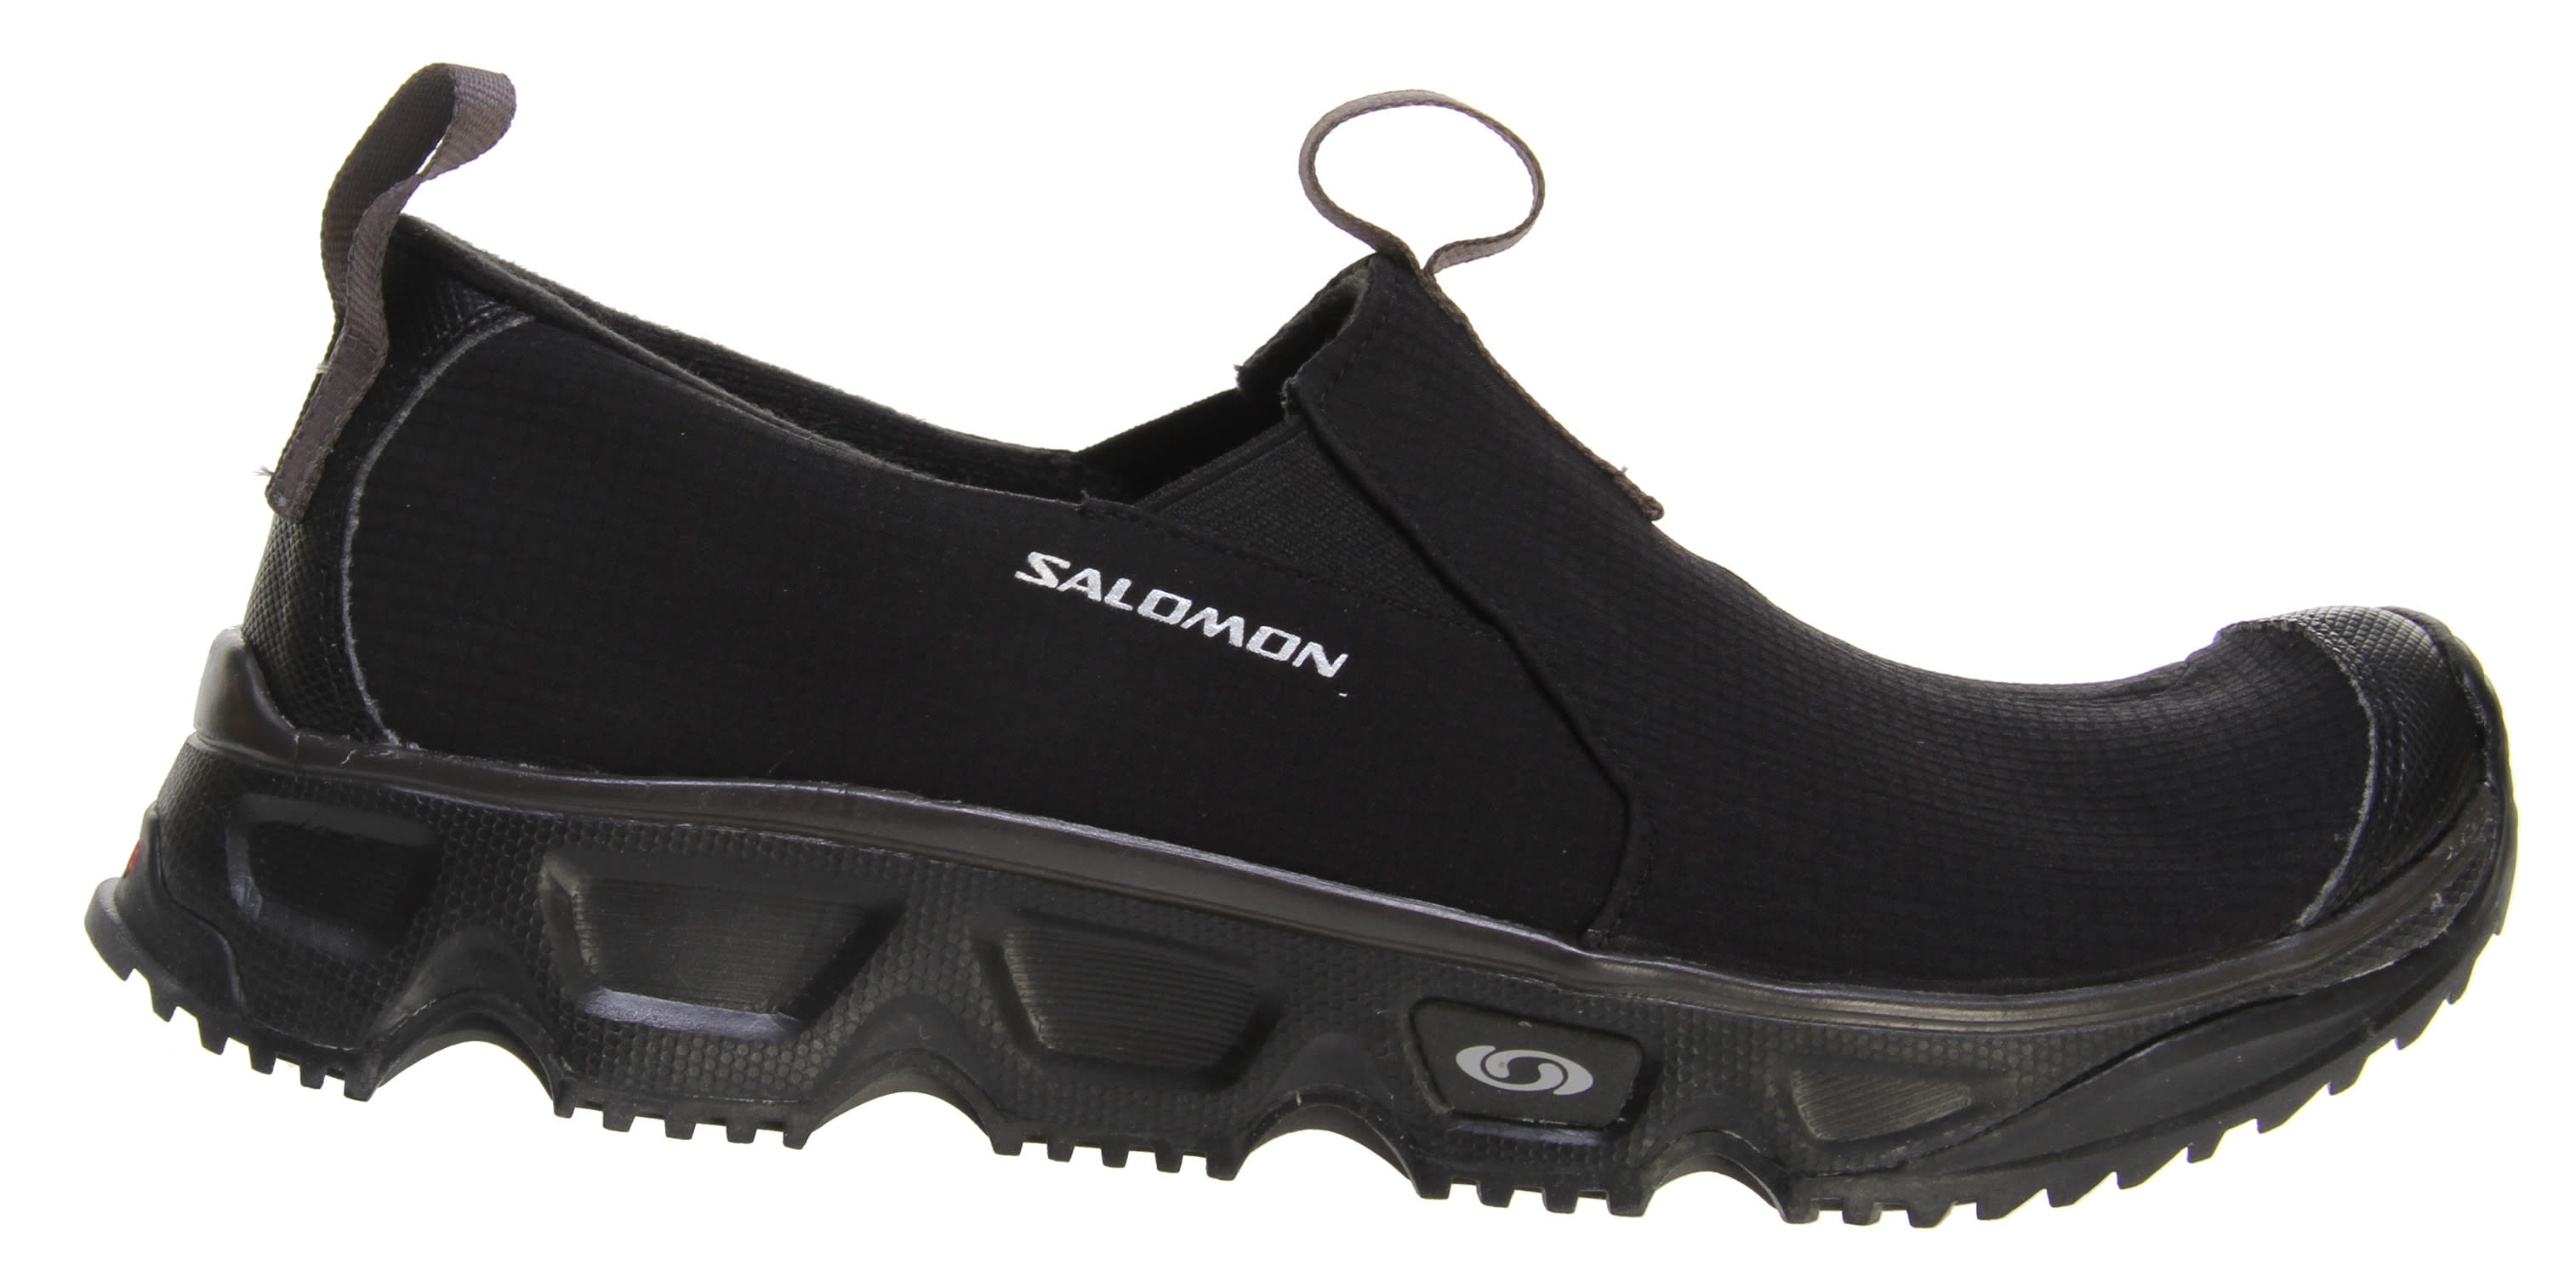 Shop for Salomon RX Snow Moc Hiking Shoes Black/Black/Autobahn - Men's